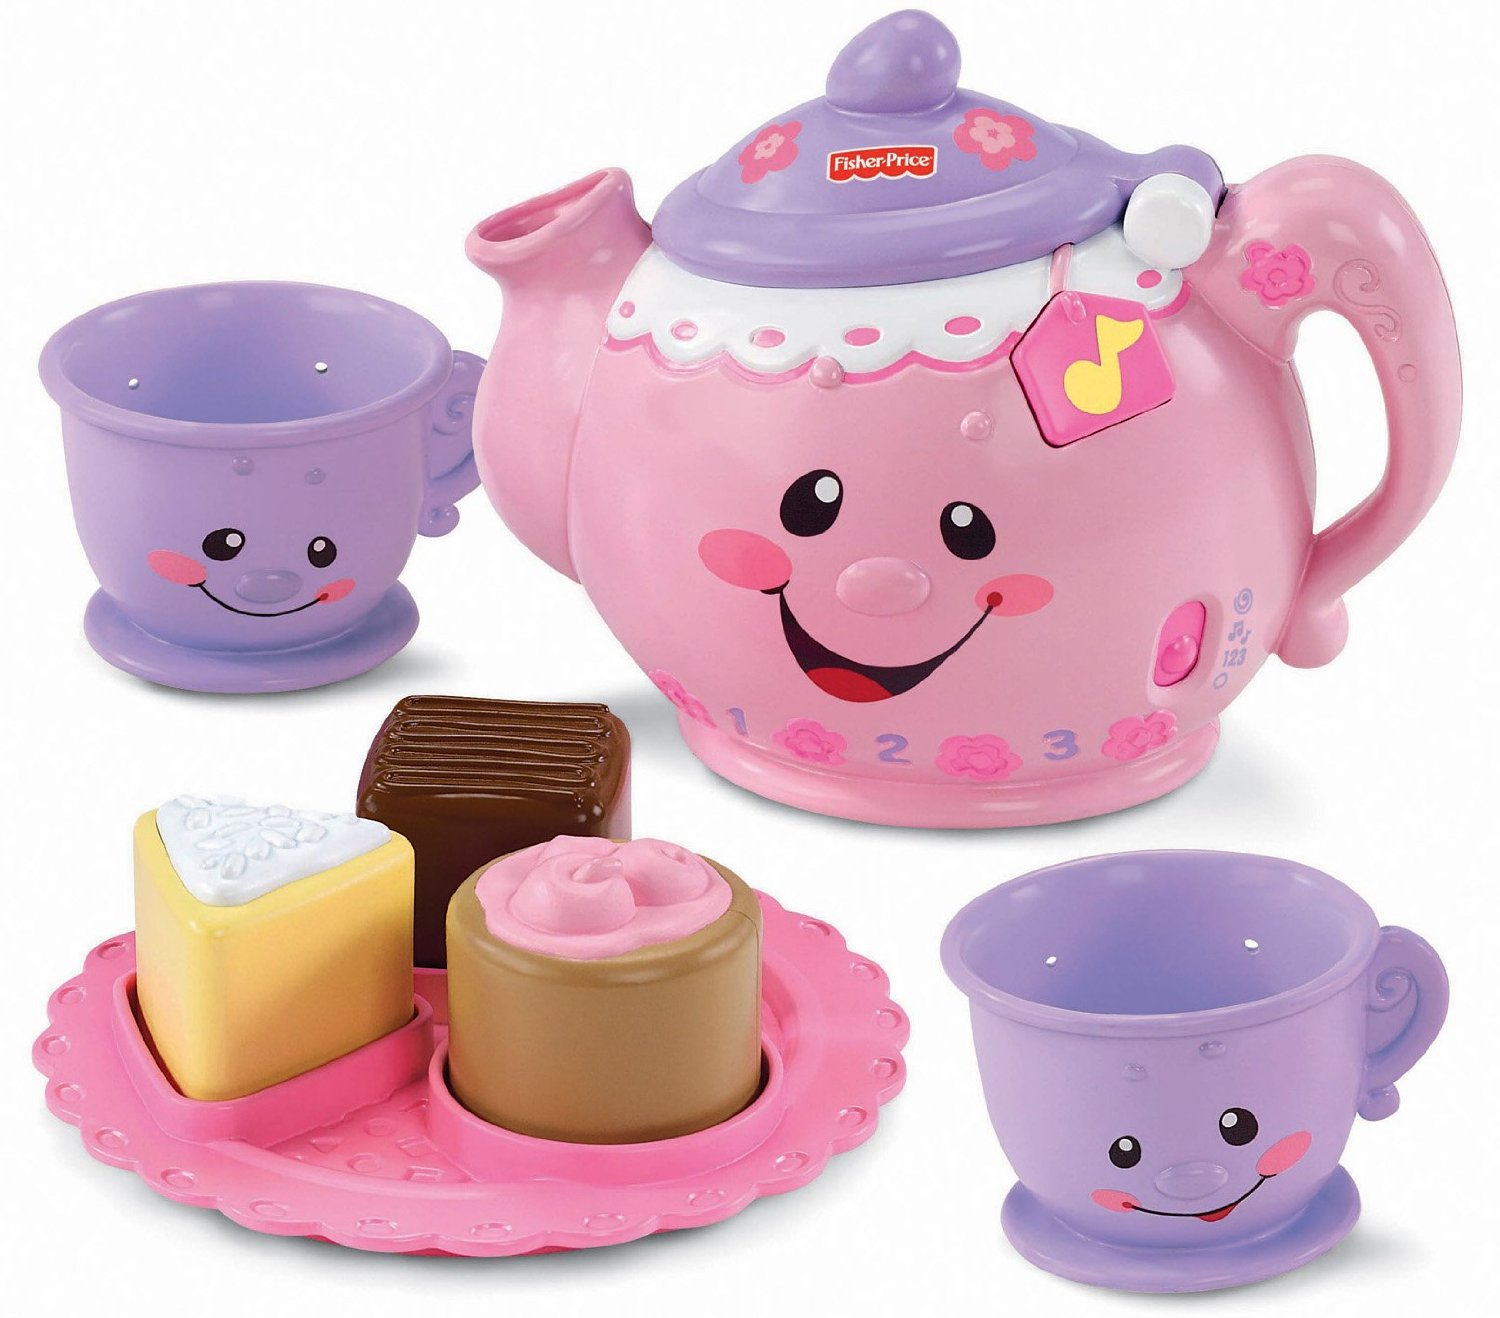 Tea Set Toy Buy New Fisher Price Laugh Learn Say Please Tea Set Musical Toy